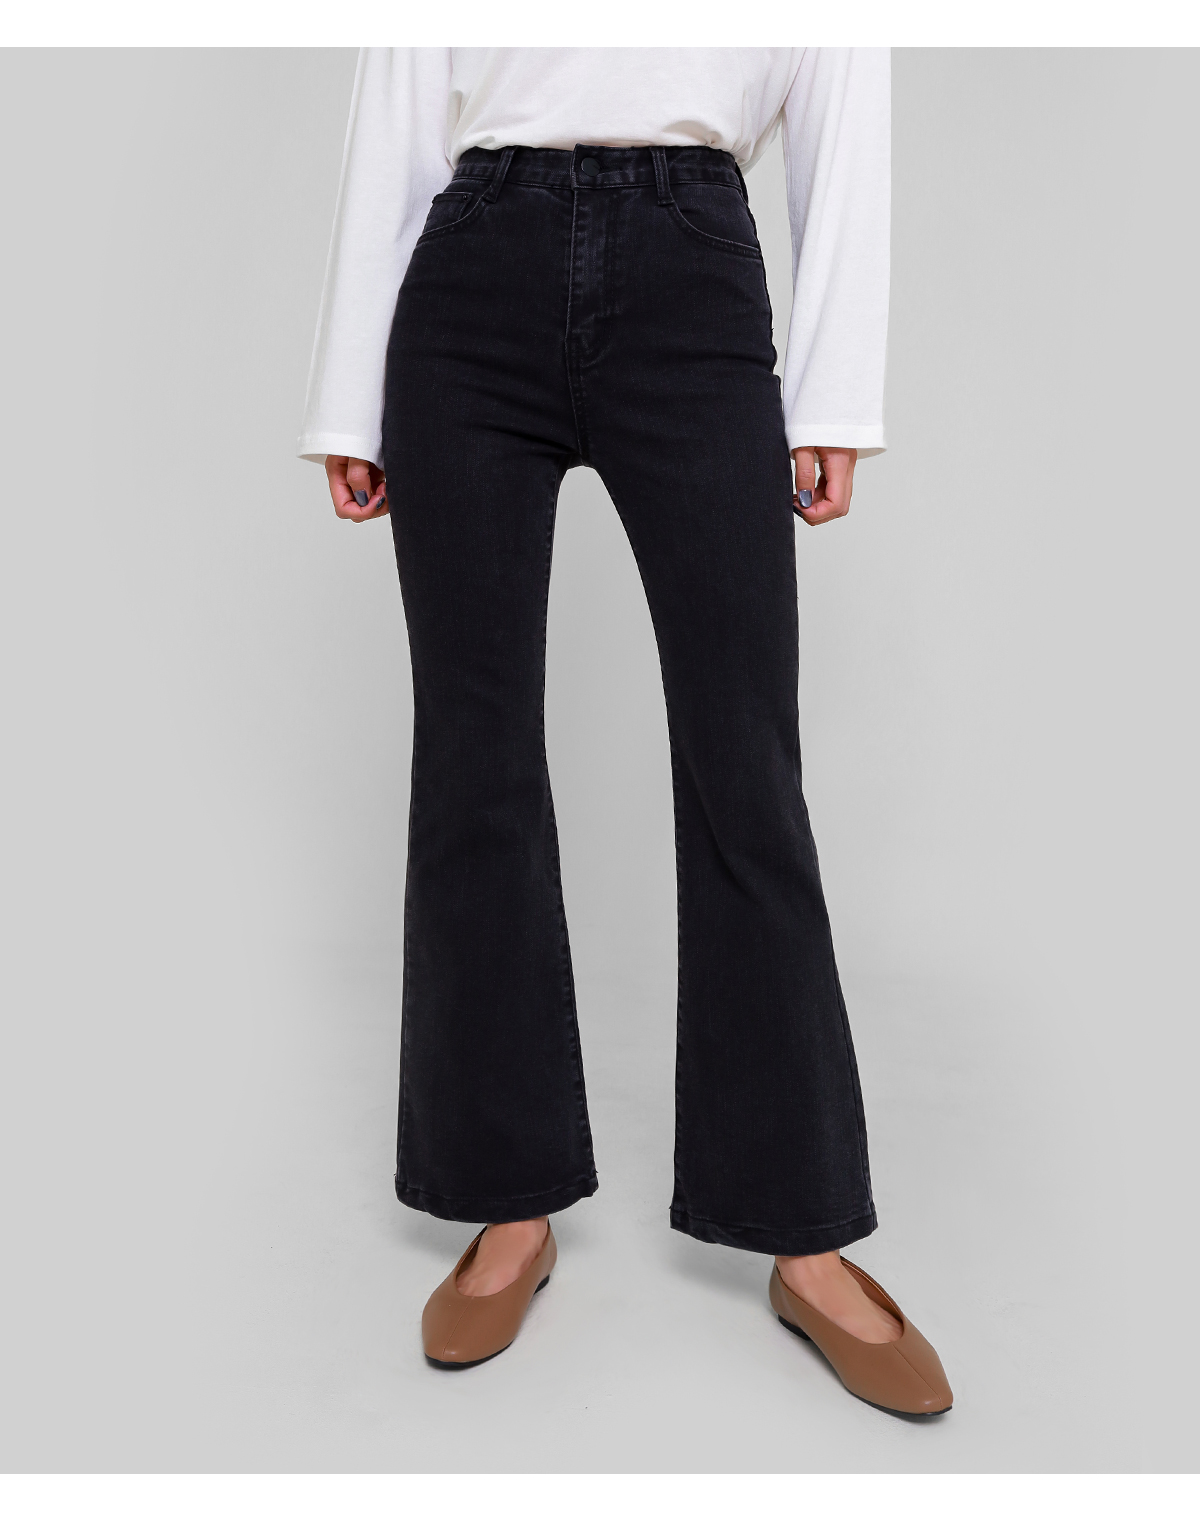 Ever bootcut trousers